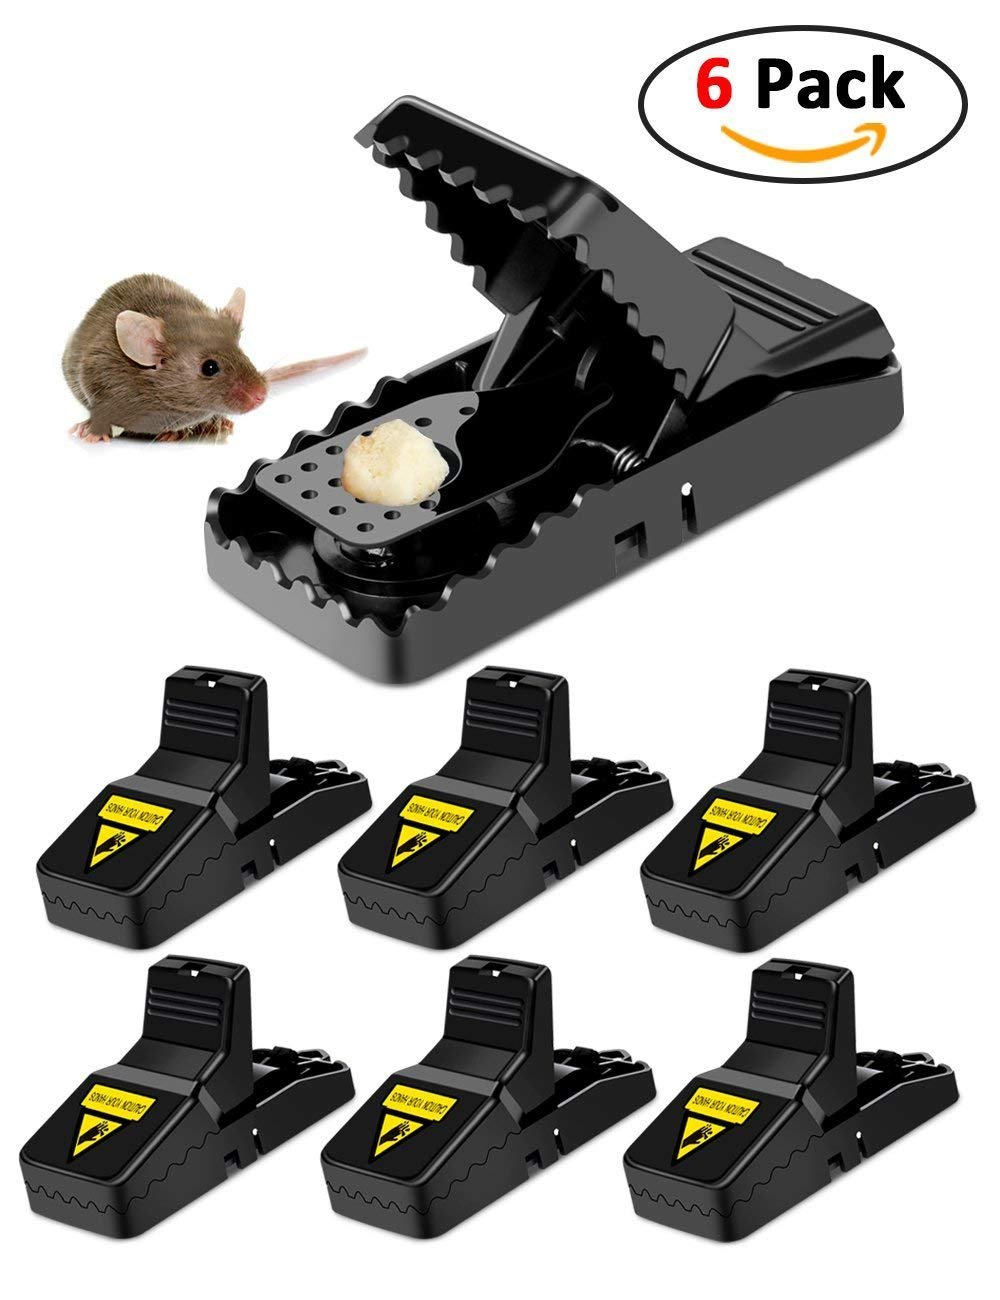 Mouse Trap Rodent Traps Mice Traps For Mouse Control Mouse Catcher Quick Kill Effective Rat For Kitchen Bedroom Garden Outdoor Indoor Bathroom Safe For Family Or Pets, 6 PACK by IUME (Image #1)